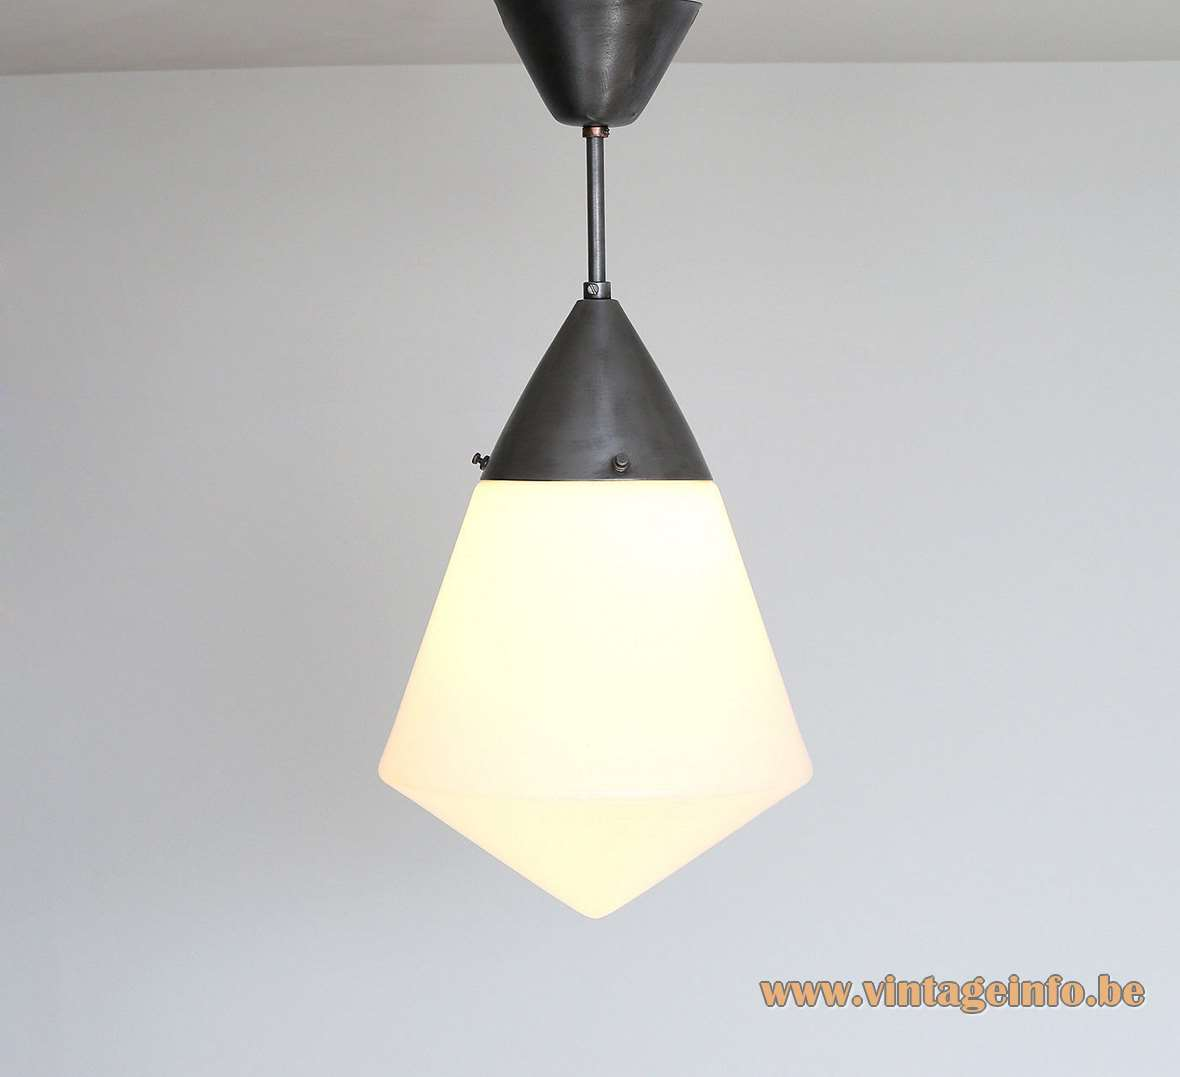 1930s Siemens L123d pendant lamp design: Peter Behrens diamond shaped opal glas Bauhaus art deco Germany